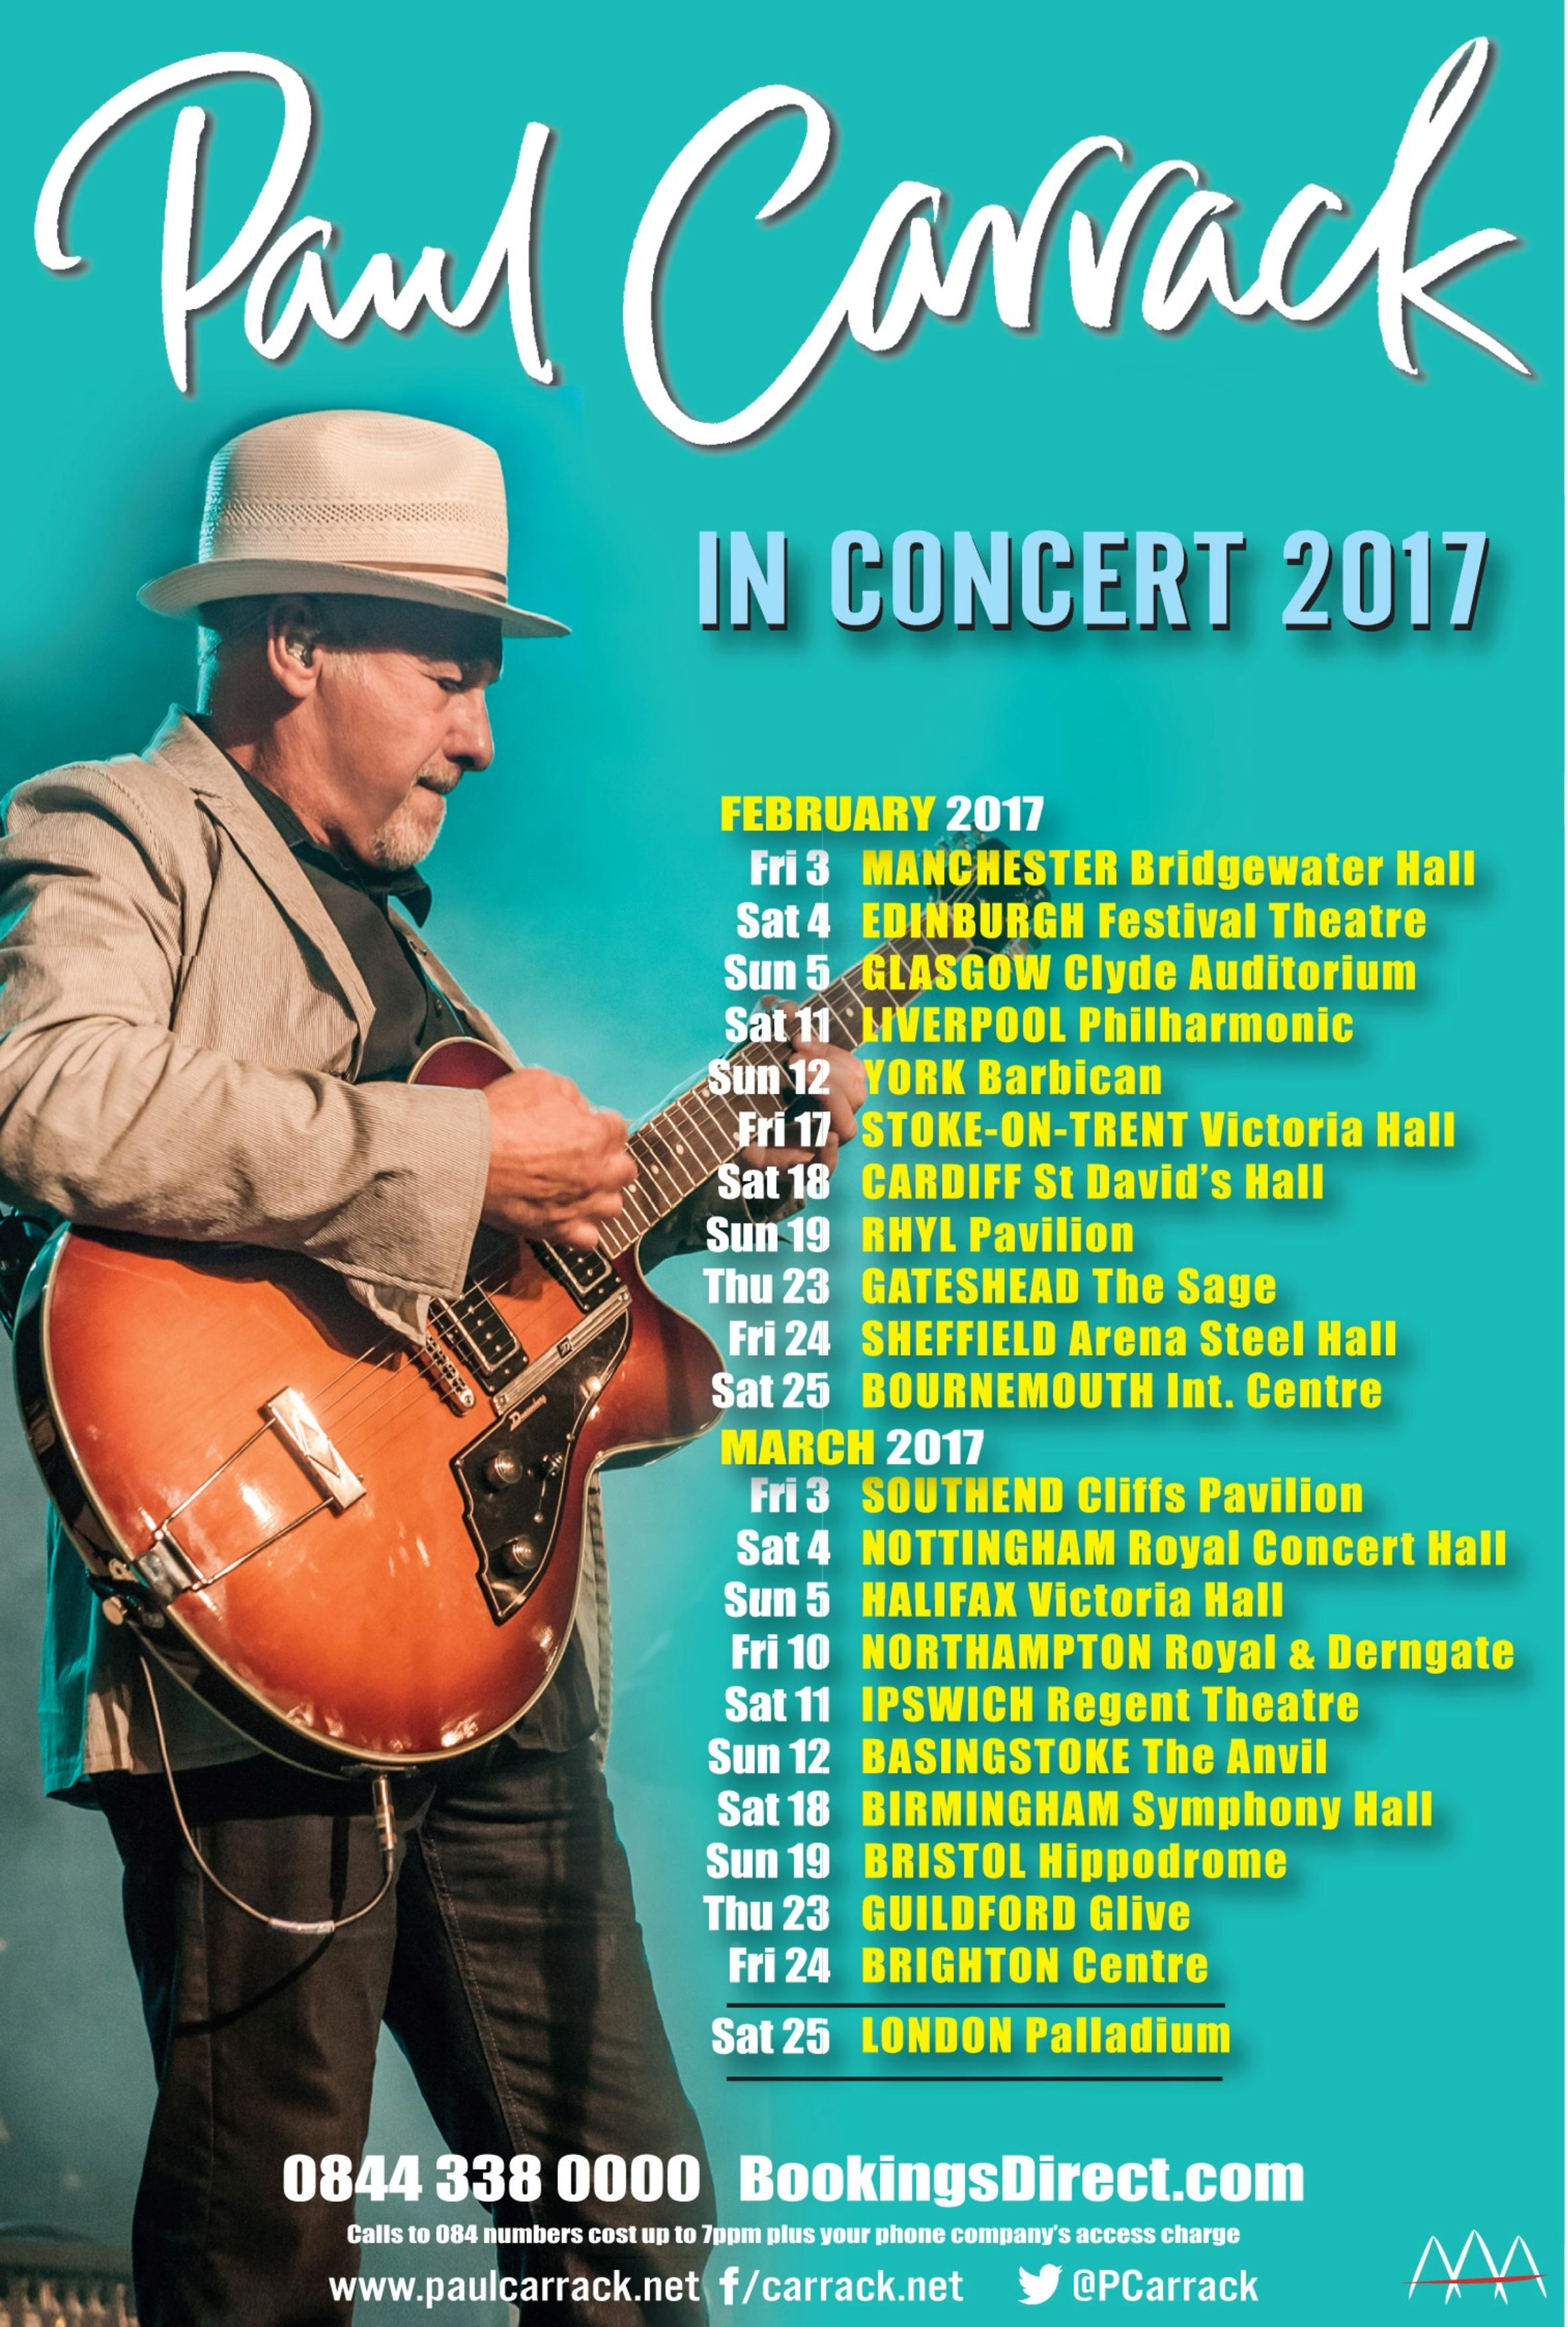 Paul Carrack tour 2017